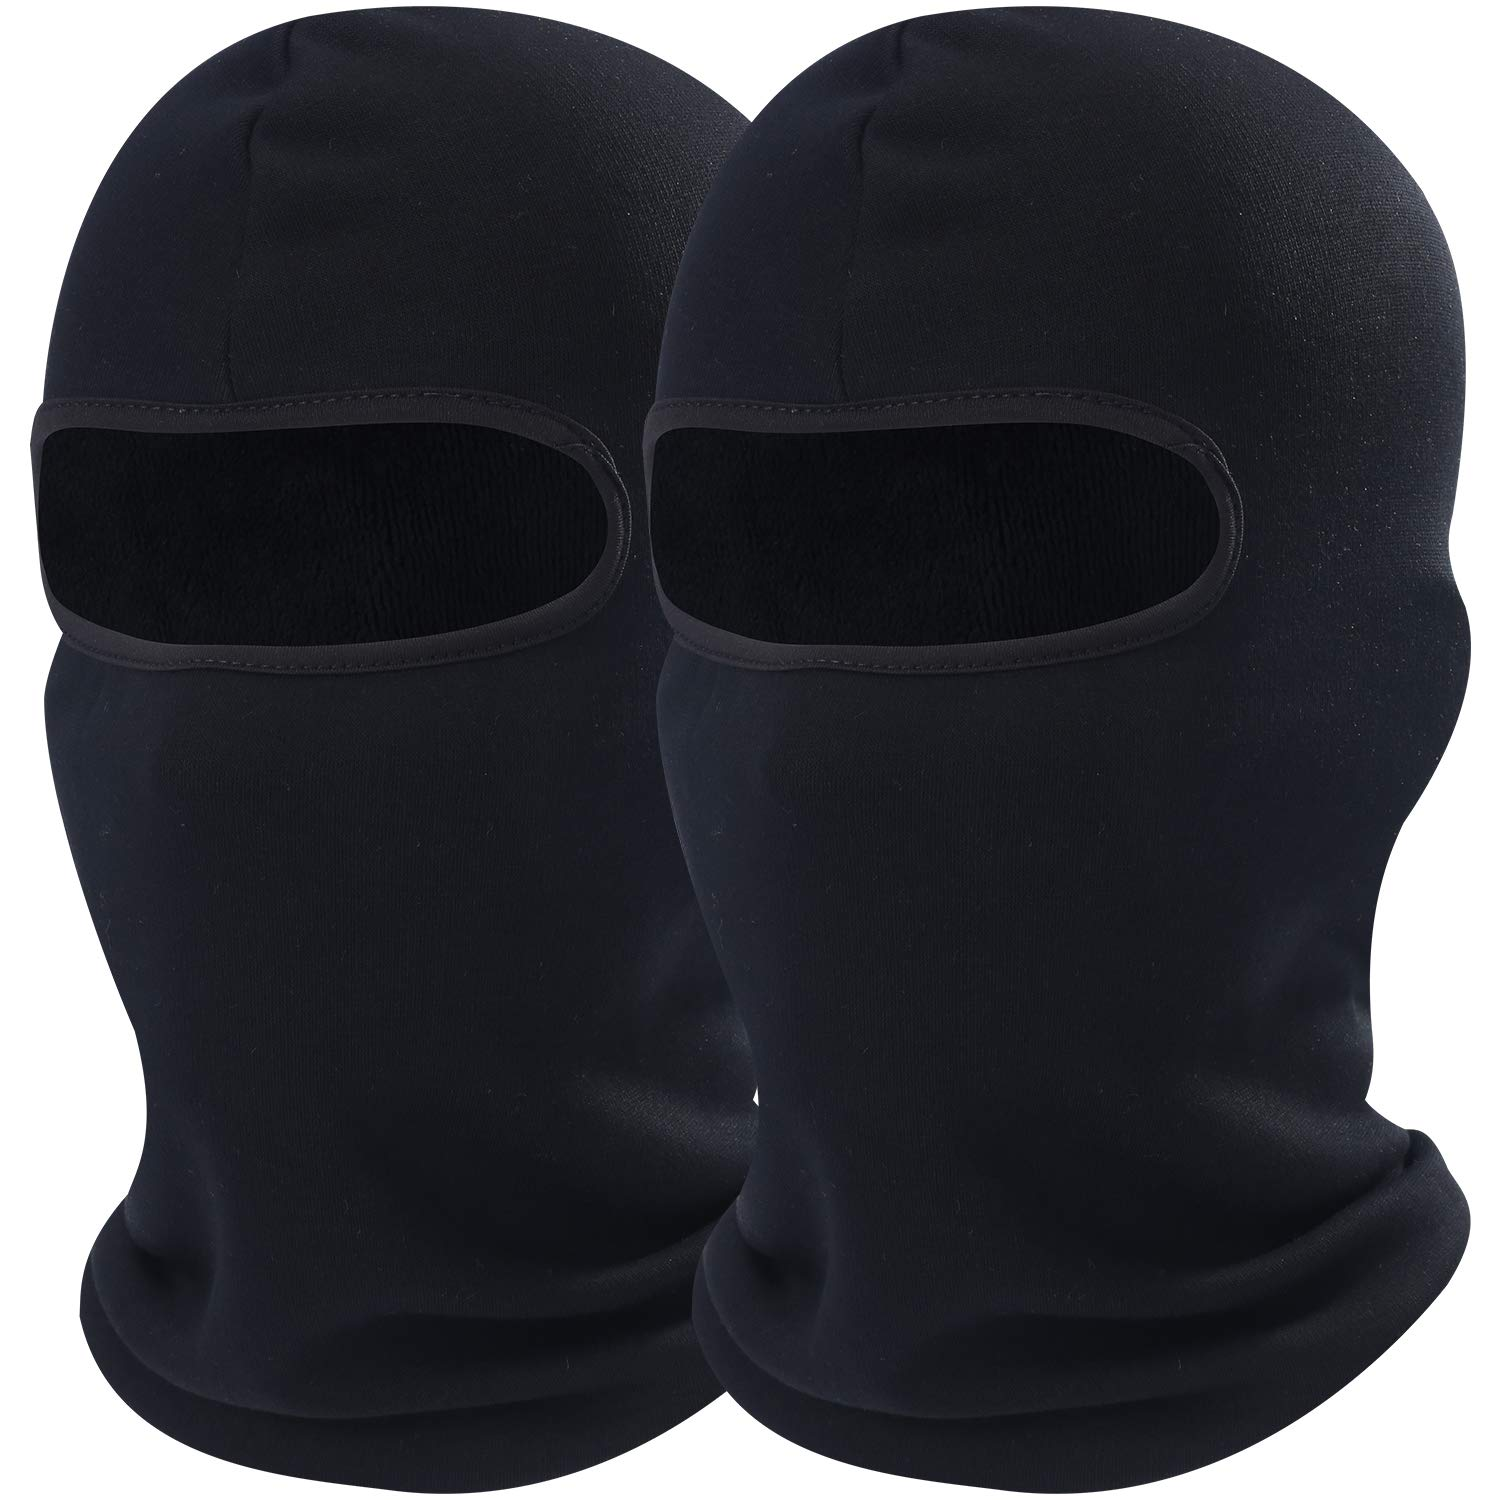 AXBXCX 4 Pack or 2 Pack - Motorcycle Balaclava Face Mask Protection for Summer/Winter Many Activities